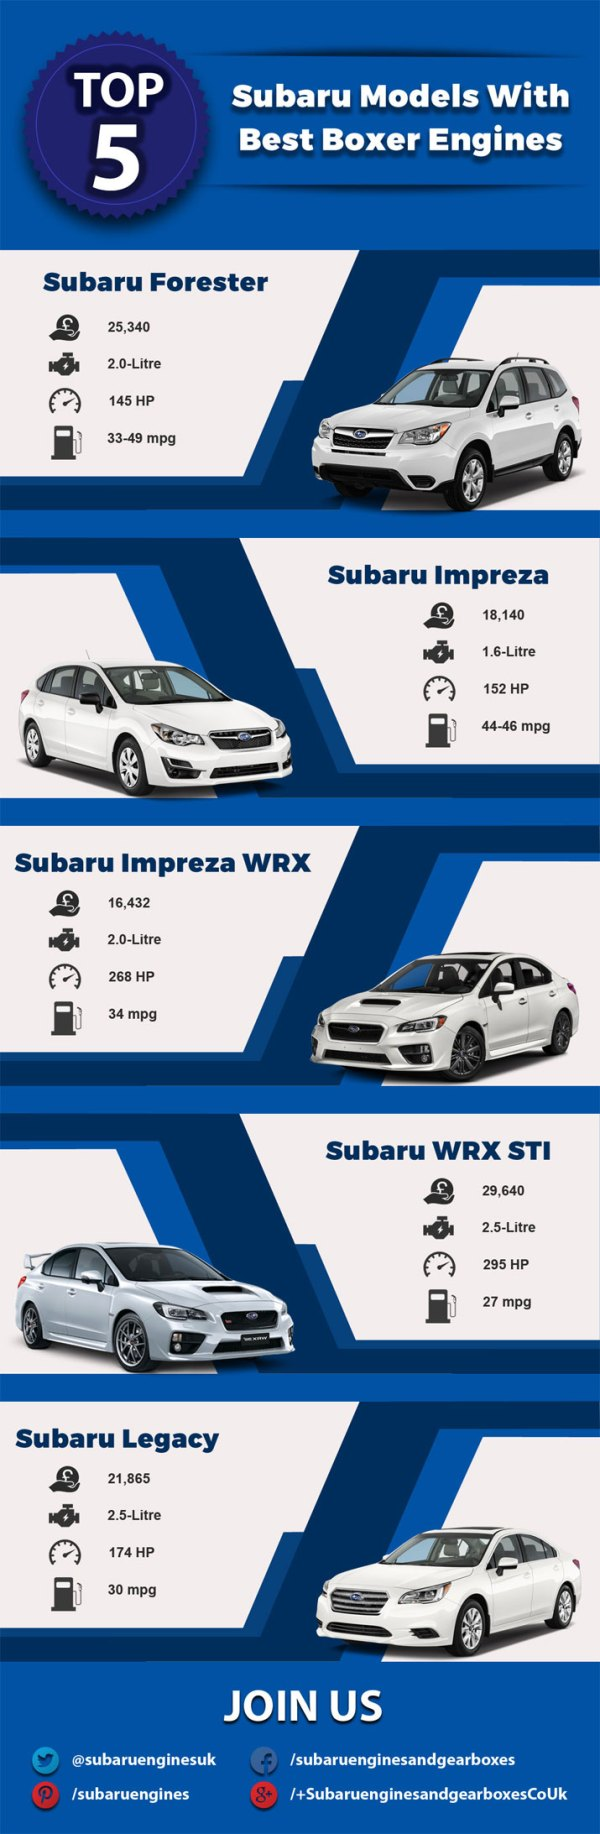 Top-5-Subaru-Models-With-Best-Boxer-Engines-galleryr